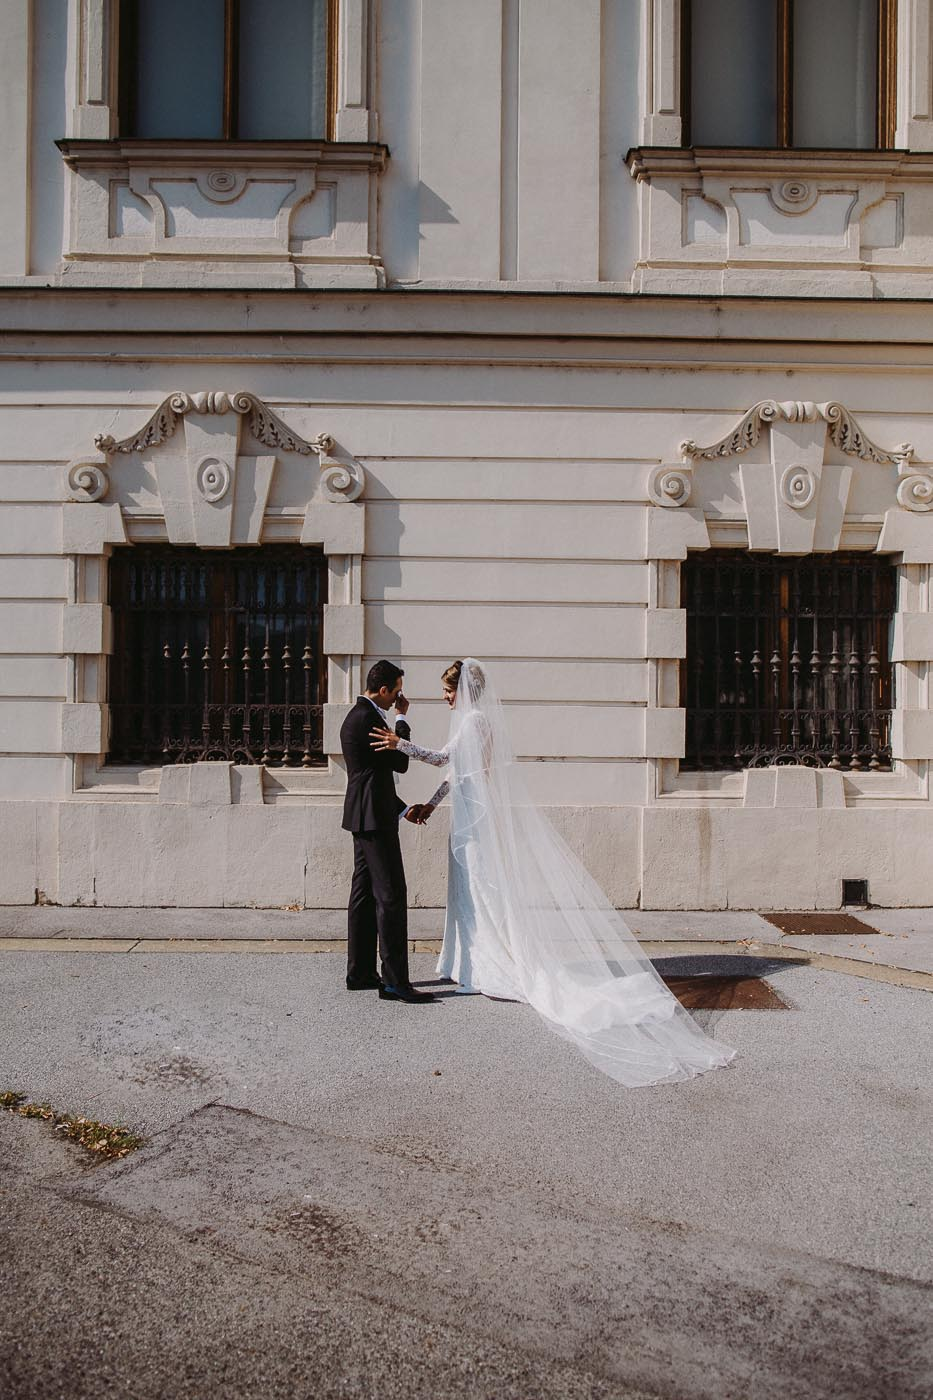 wedding-palais-liechtenstein-vienna-232